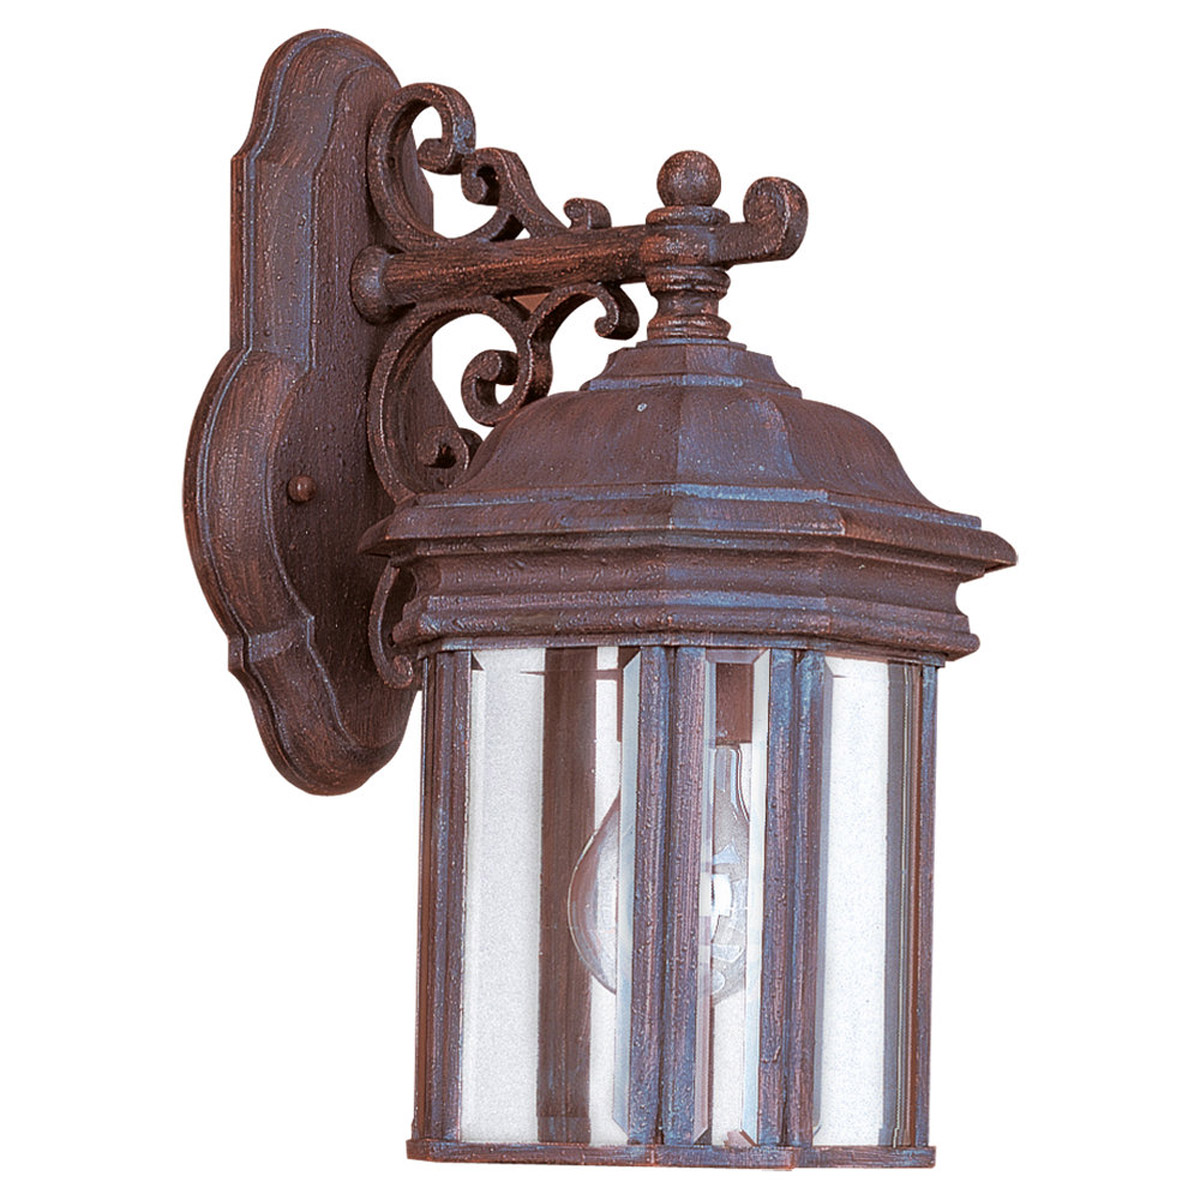 Sea Gull Lighting Hill Gate 1 Light Outdoor Wall Lantern in Textured Rust Patina 8835-08 photo